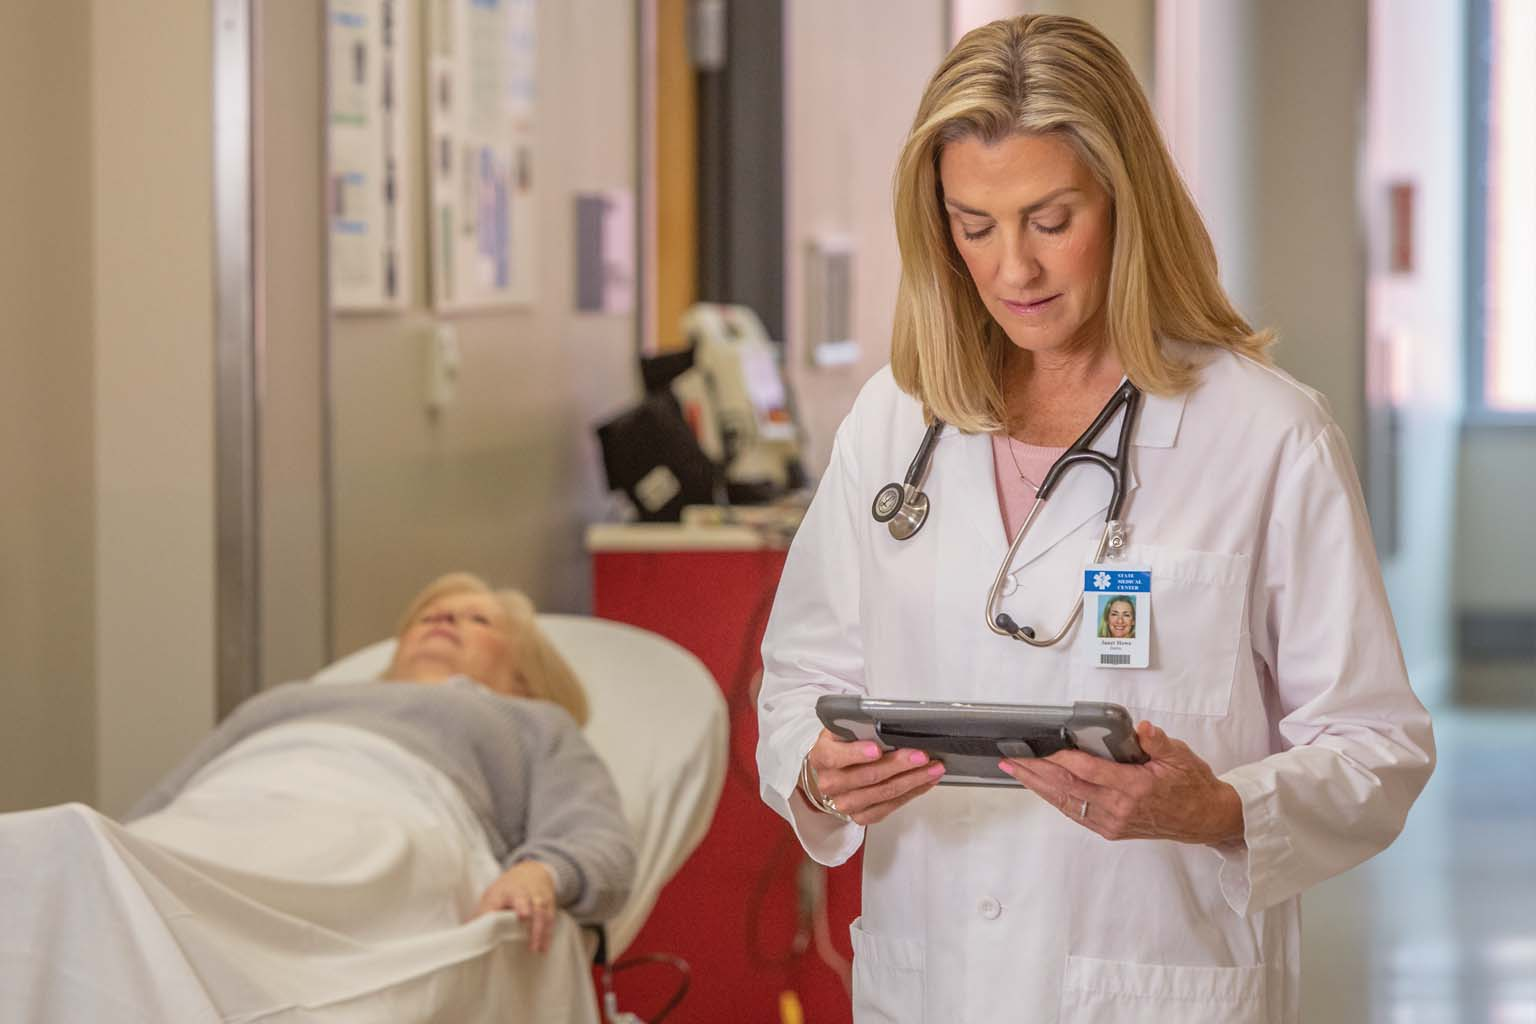 doctor using tablet in hospital hallway in front of patient on gurney